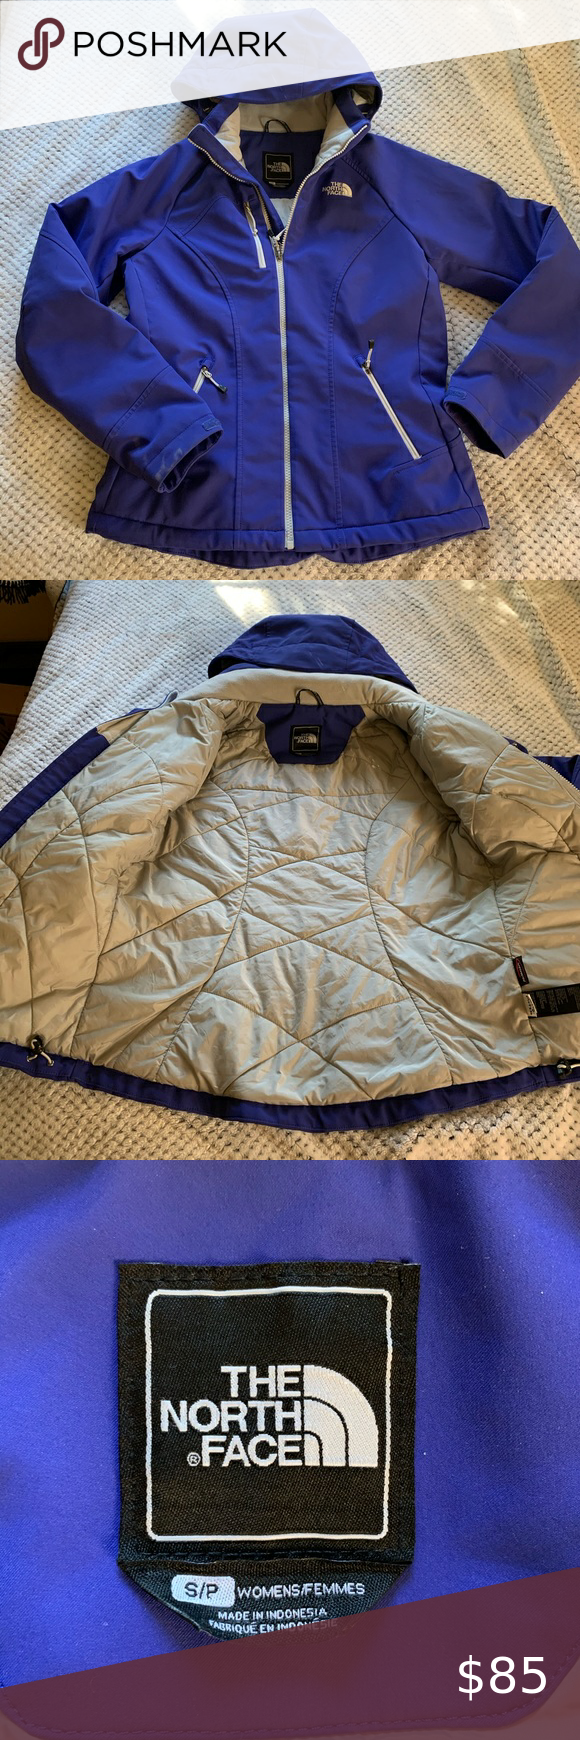 The North Face Winter Jacket With Primaloft Winter Jacket North Face Winter Jackets Jackets [ 1740 x 580 Pixel ]